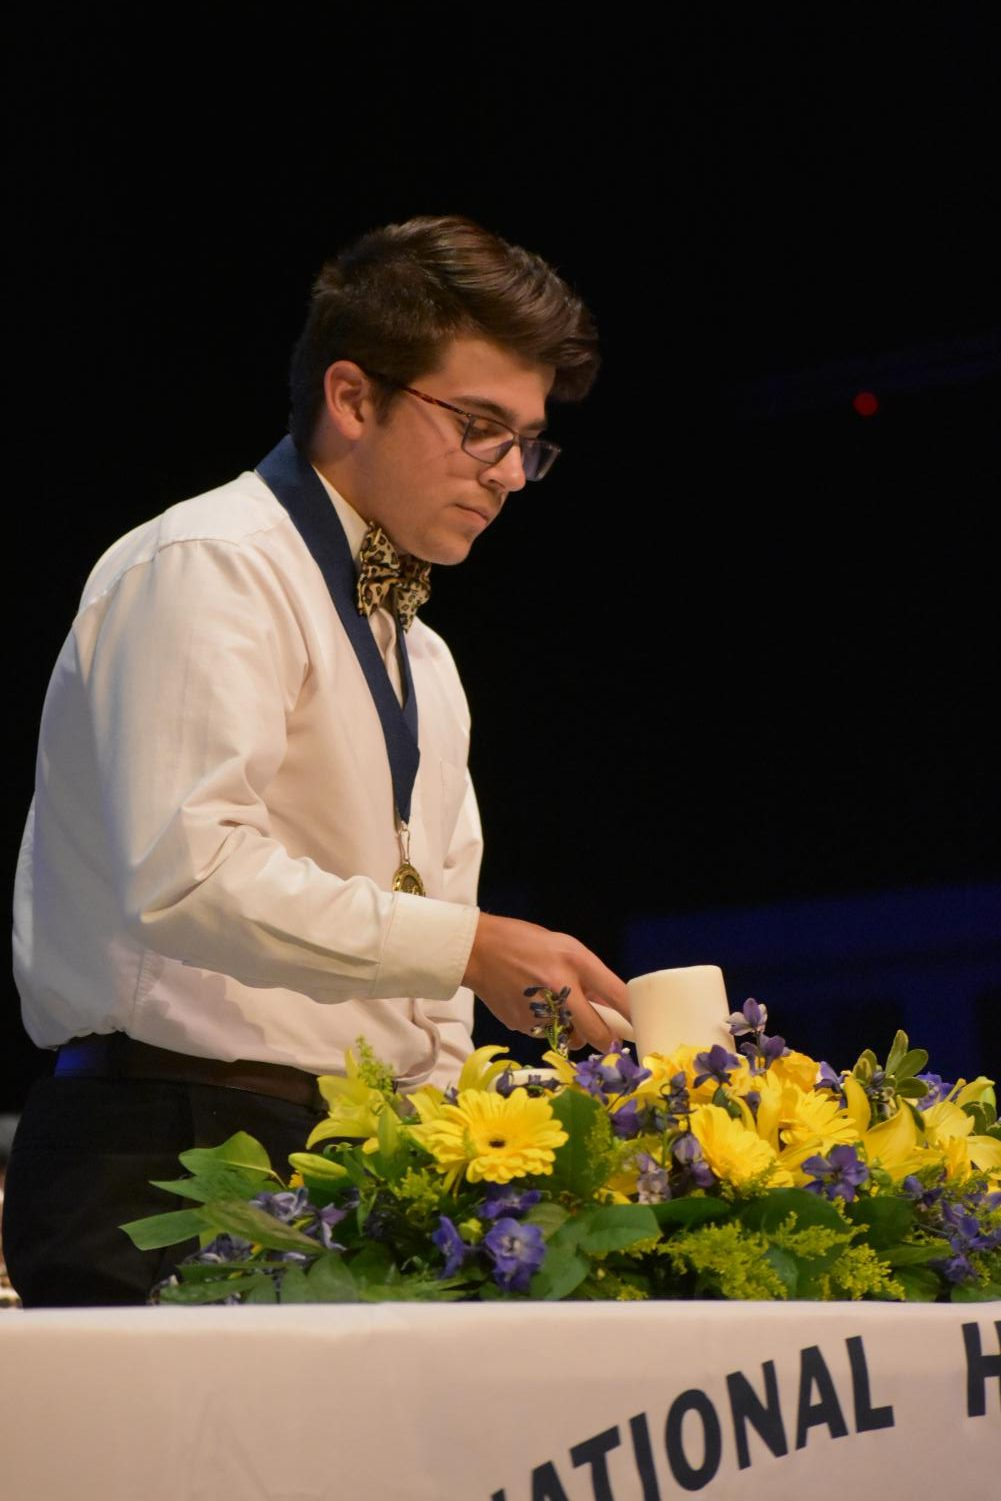 Shining bright \\ Senior Jaron Harbison helps lead the National Honor Society's induction ceremony.